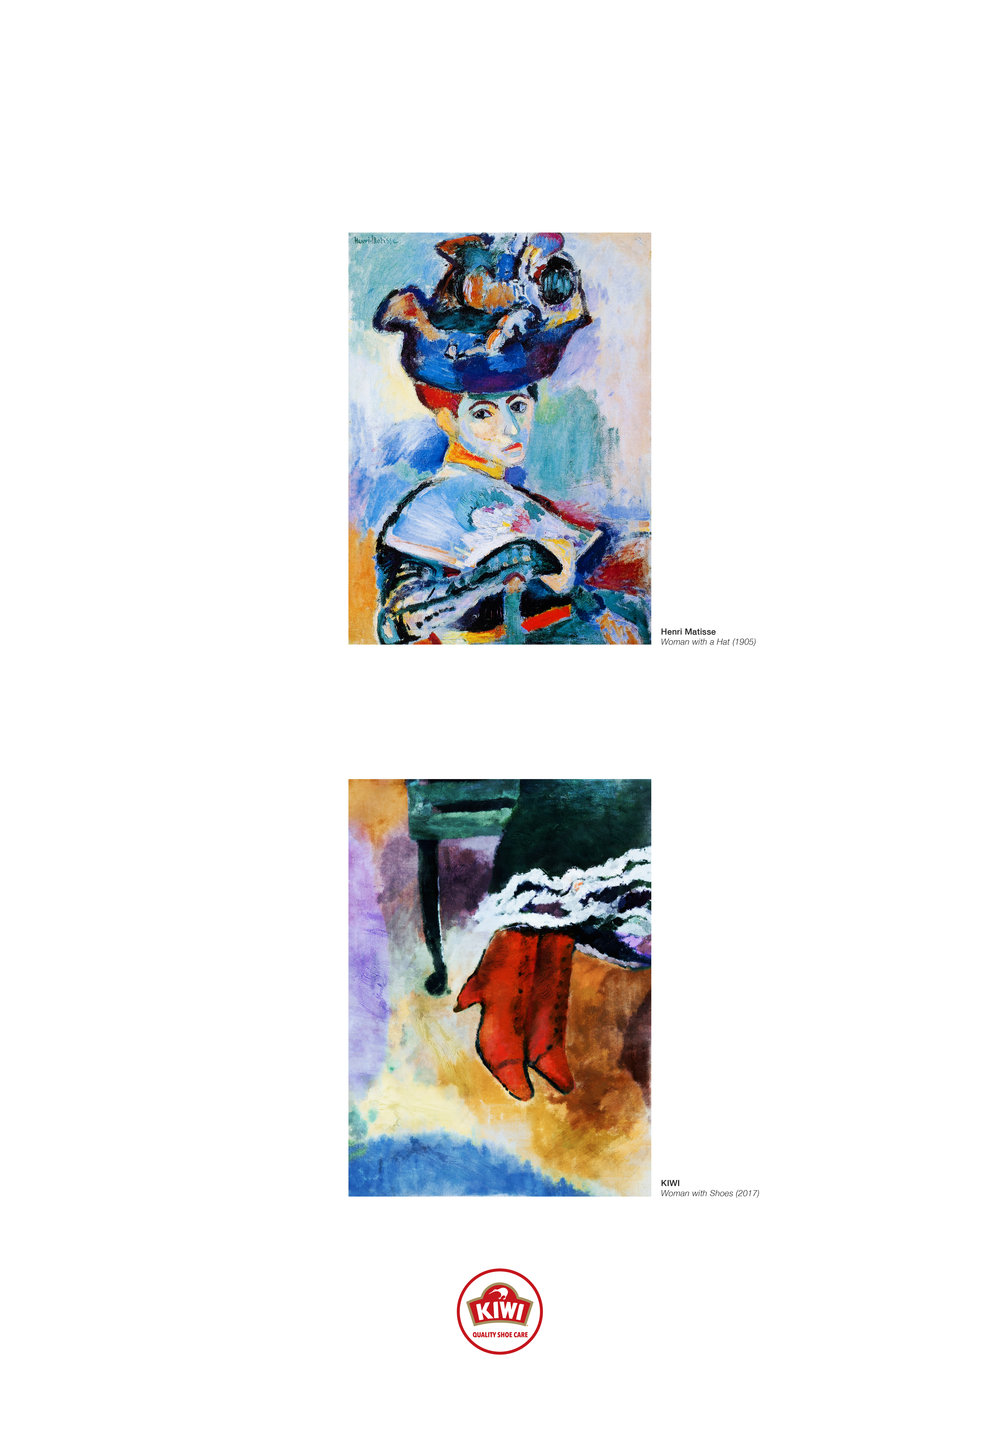 E03_ KIWIPORTRAITSCOMPLETED_MATISSE.jpg